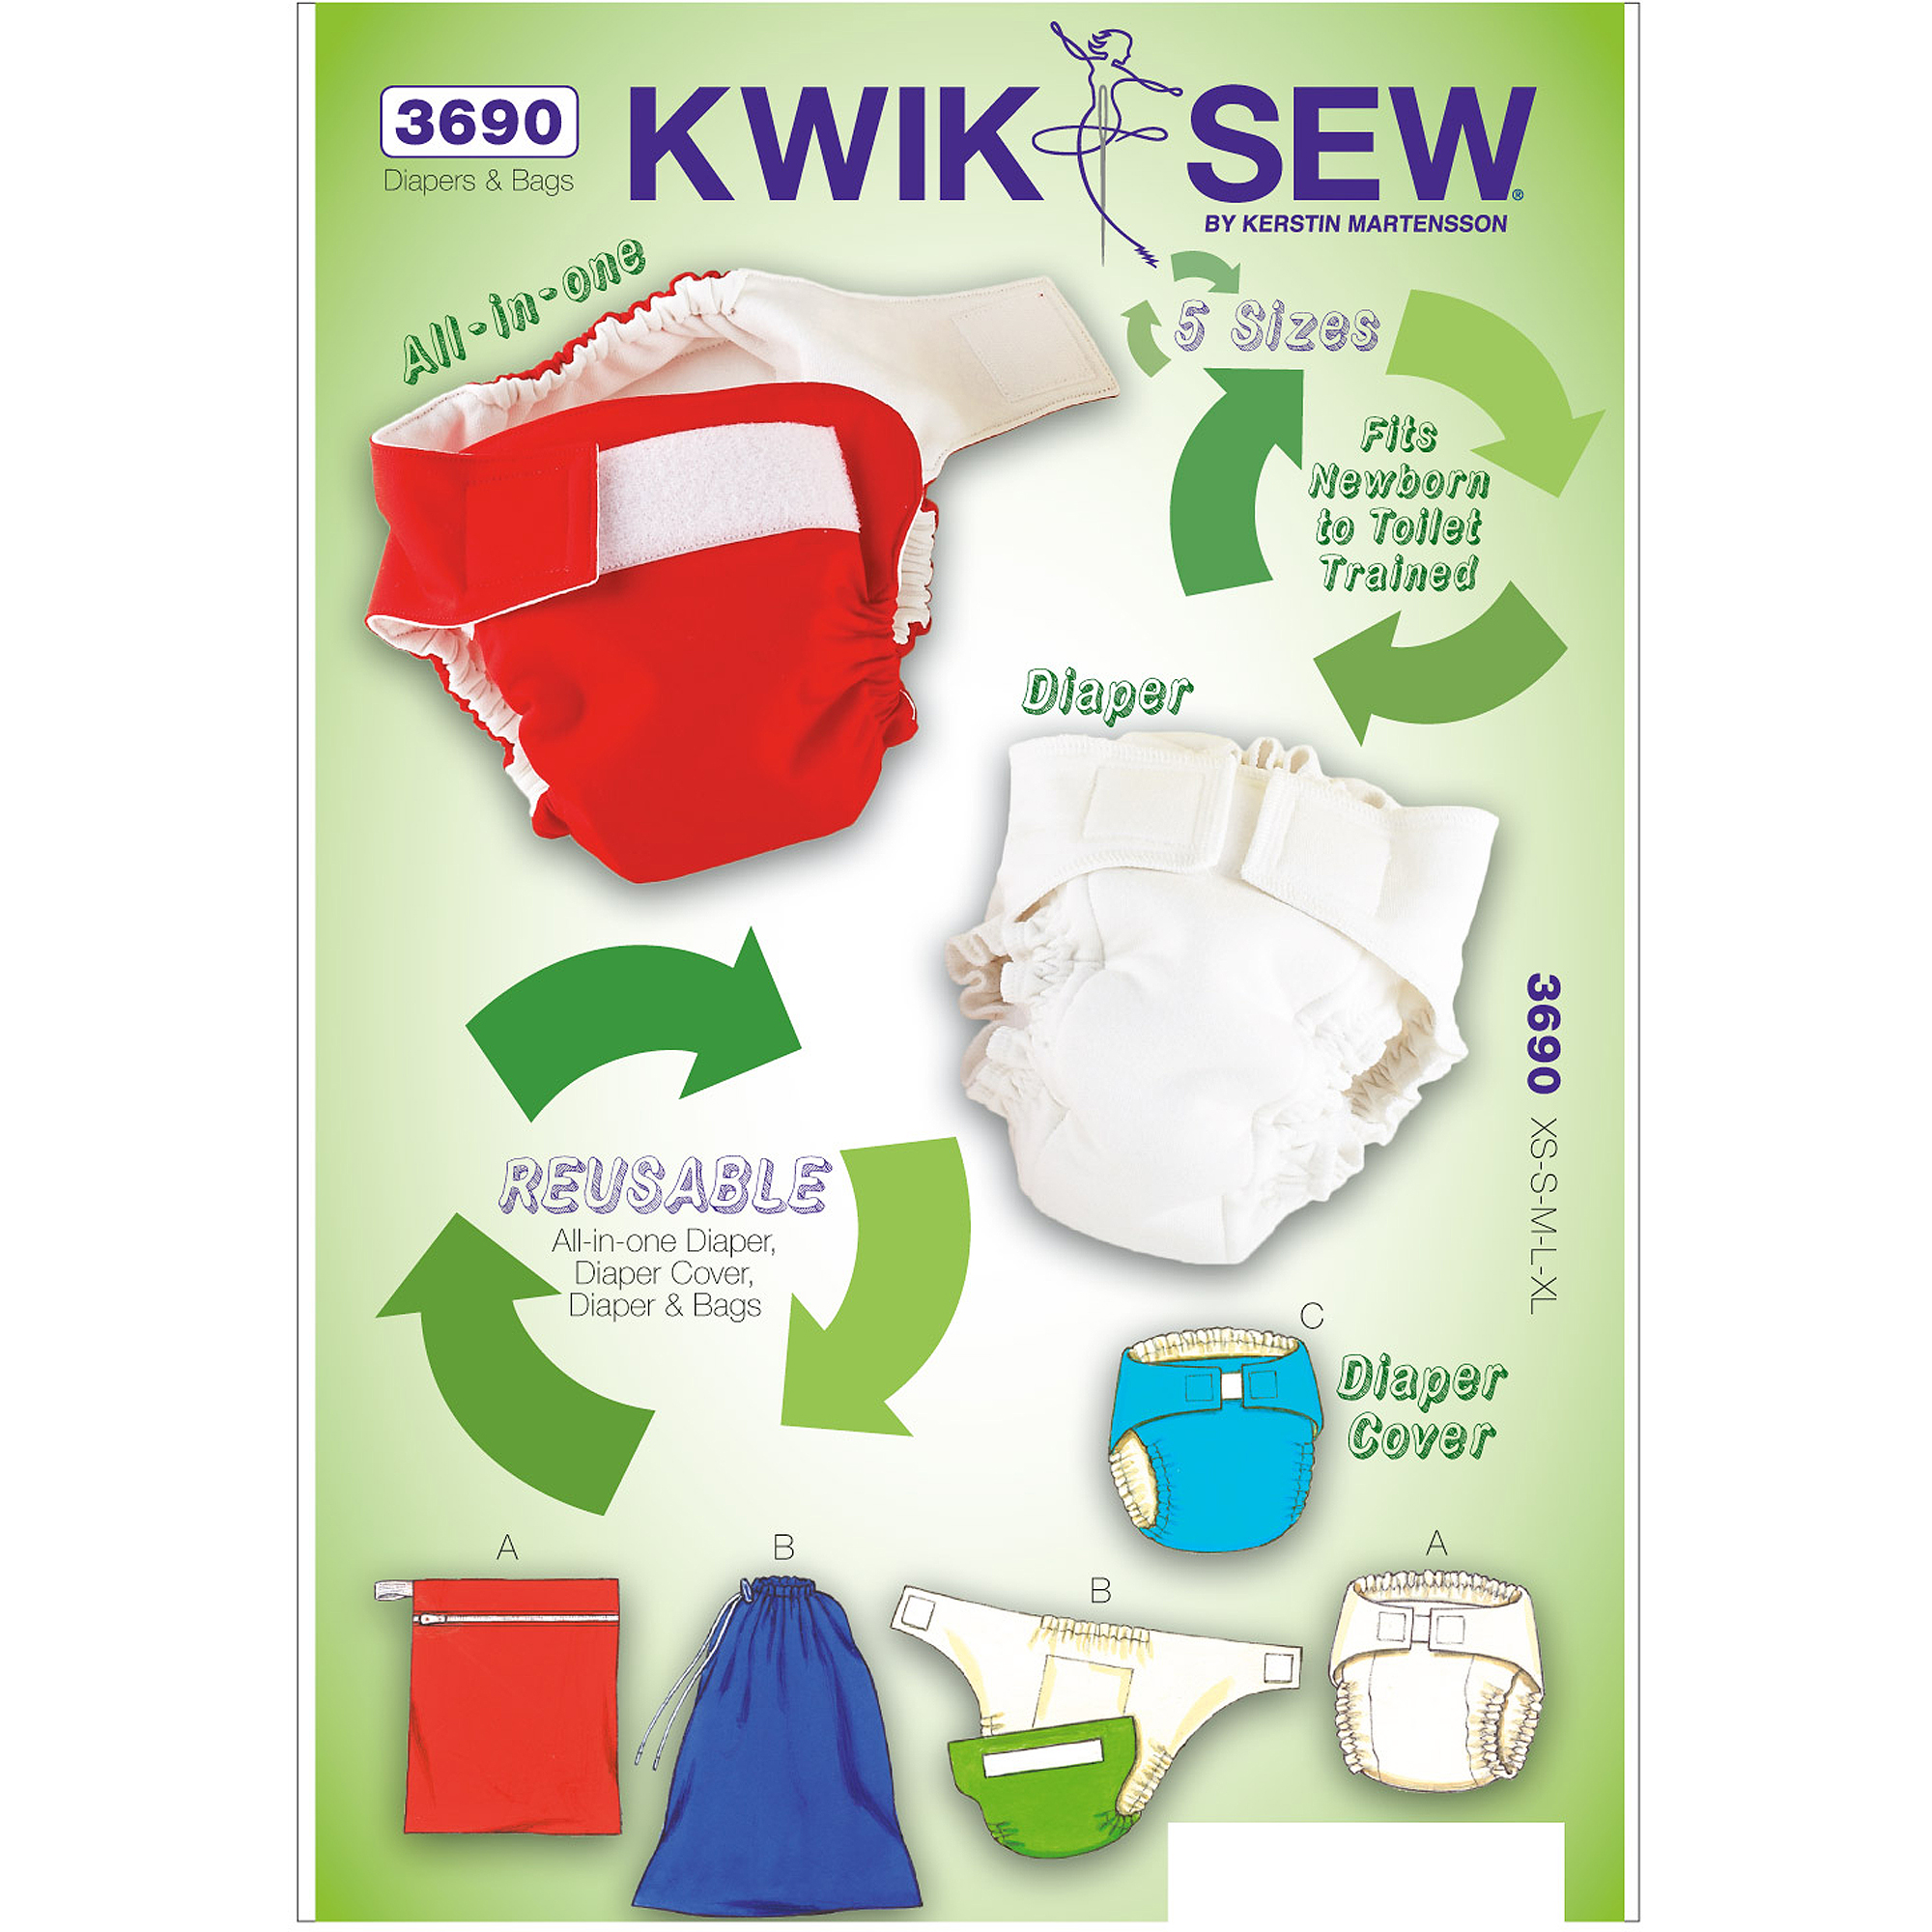 Kwik Sew Pattern Diapers, Diaper Cover, Insert and Bags, (XS, S, M, L, XL), Bag Sizes: (S, M, L)